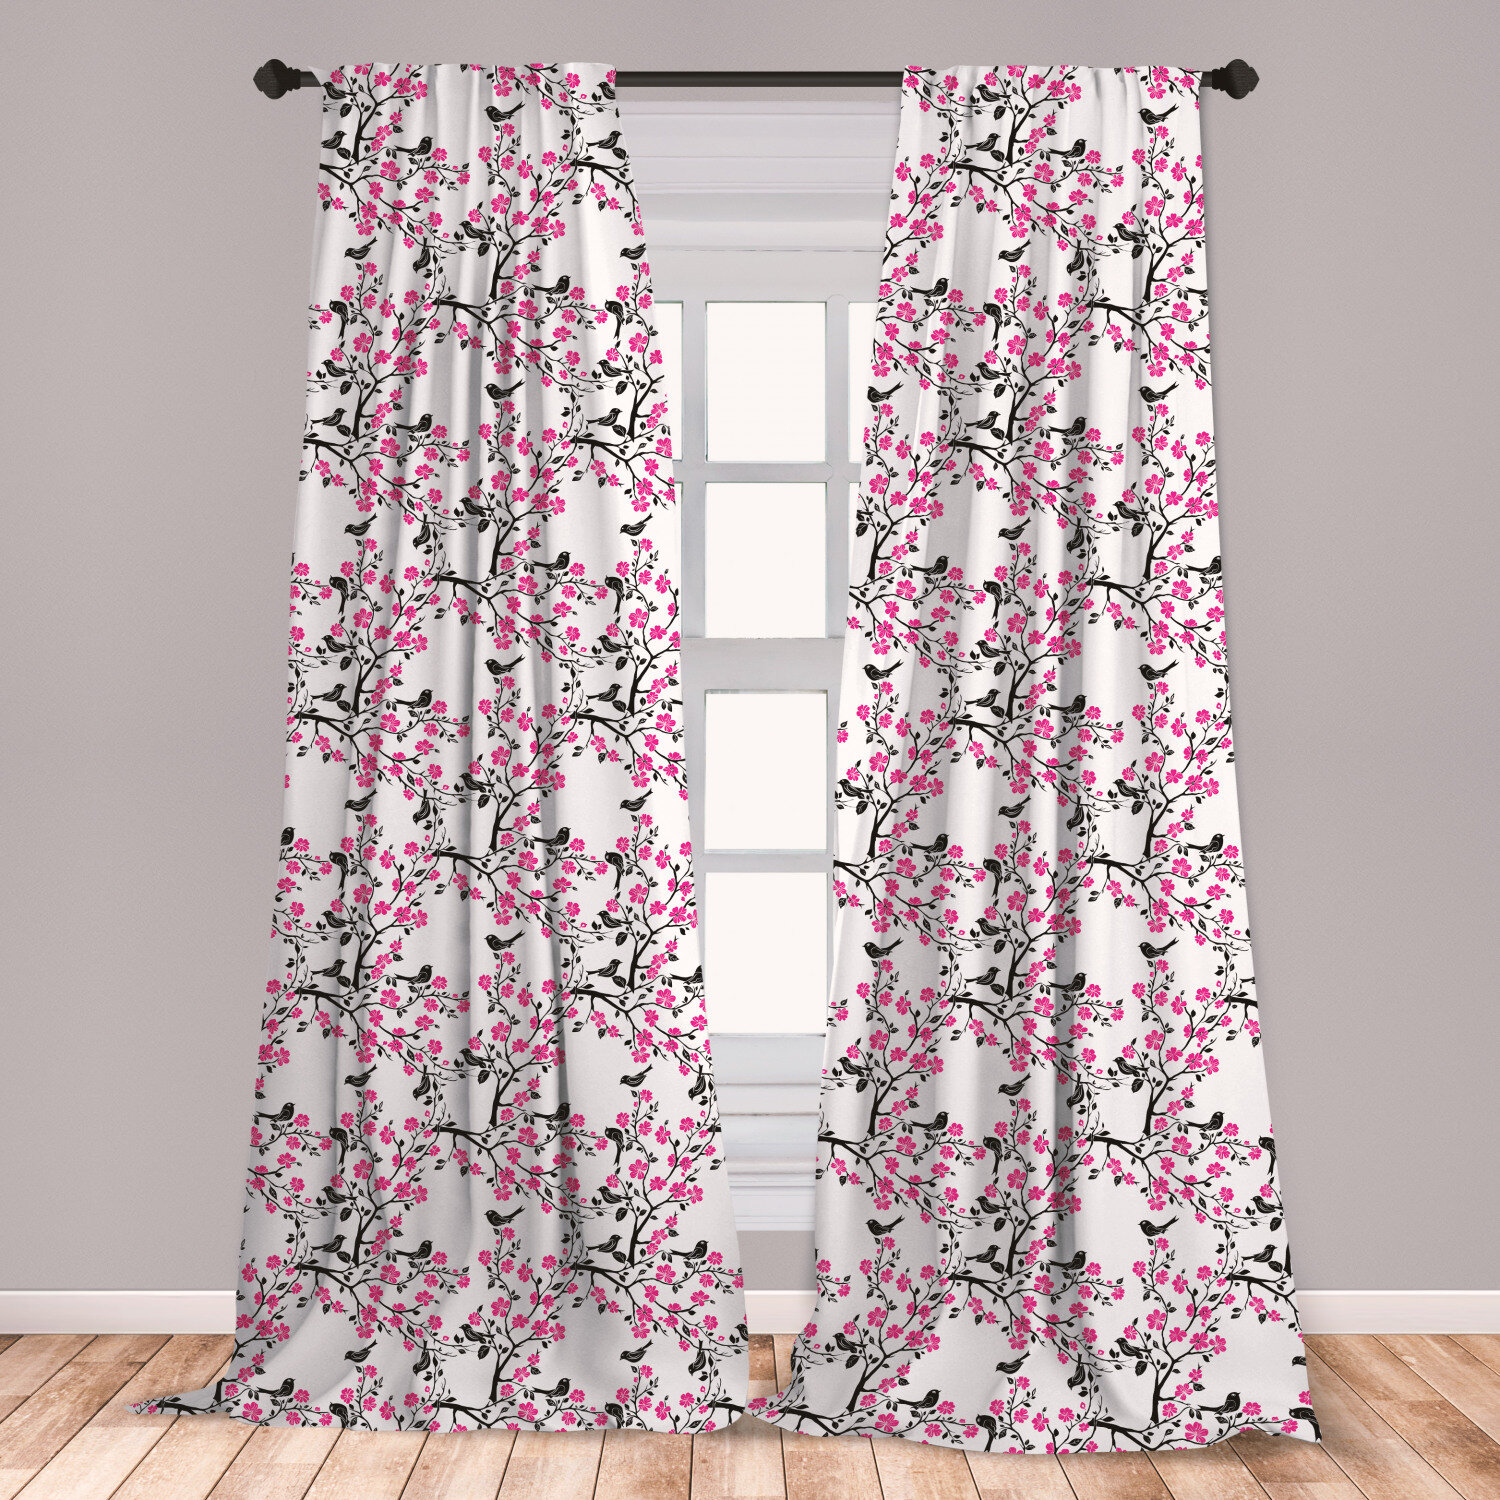 East Urban Home Ambesonne Cherry Blossom Window Curtains Sakura Tree With Flourishing Flowers And Birds Black Silhouettes Lightweight Decorative Panels Set Of 2 With Rod Pocket 56 X 63 Black Hot Pink White